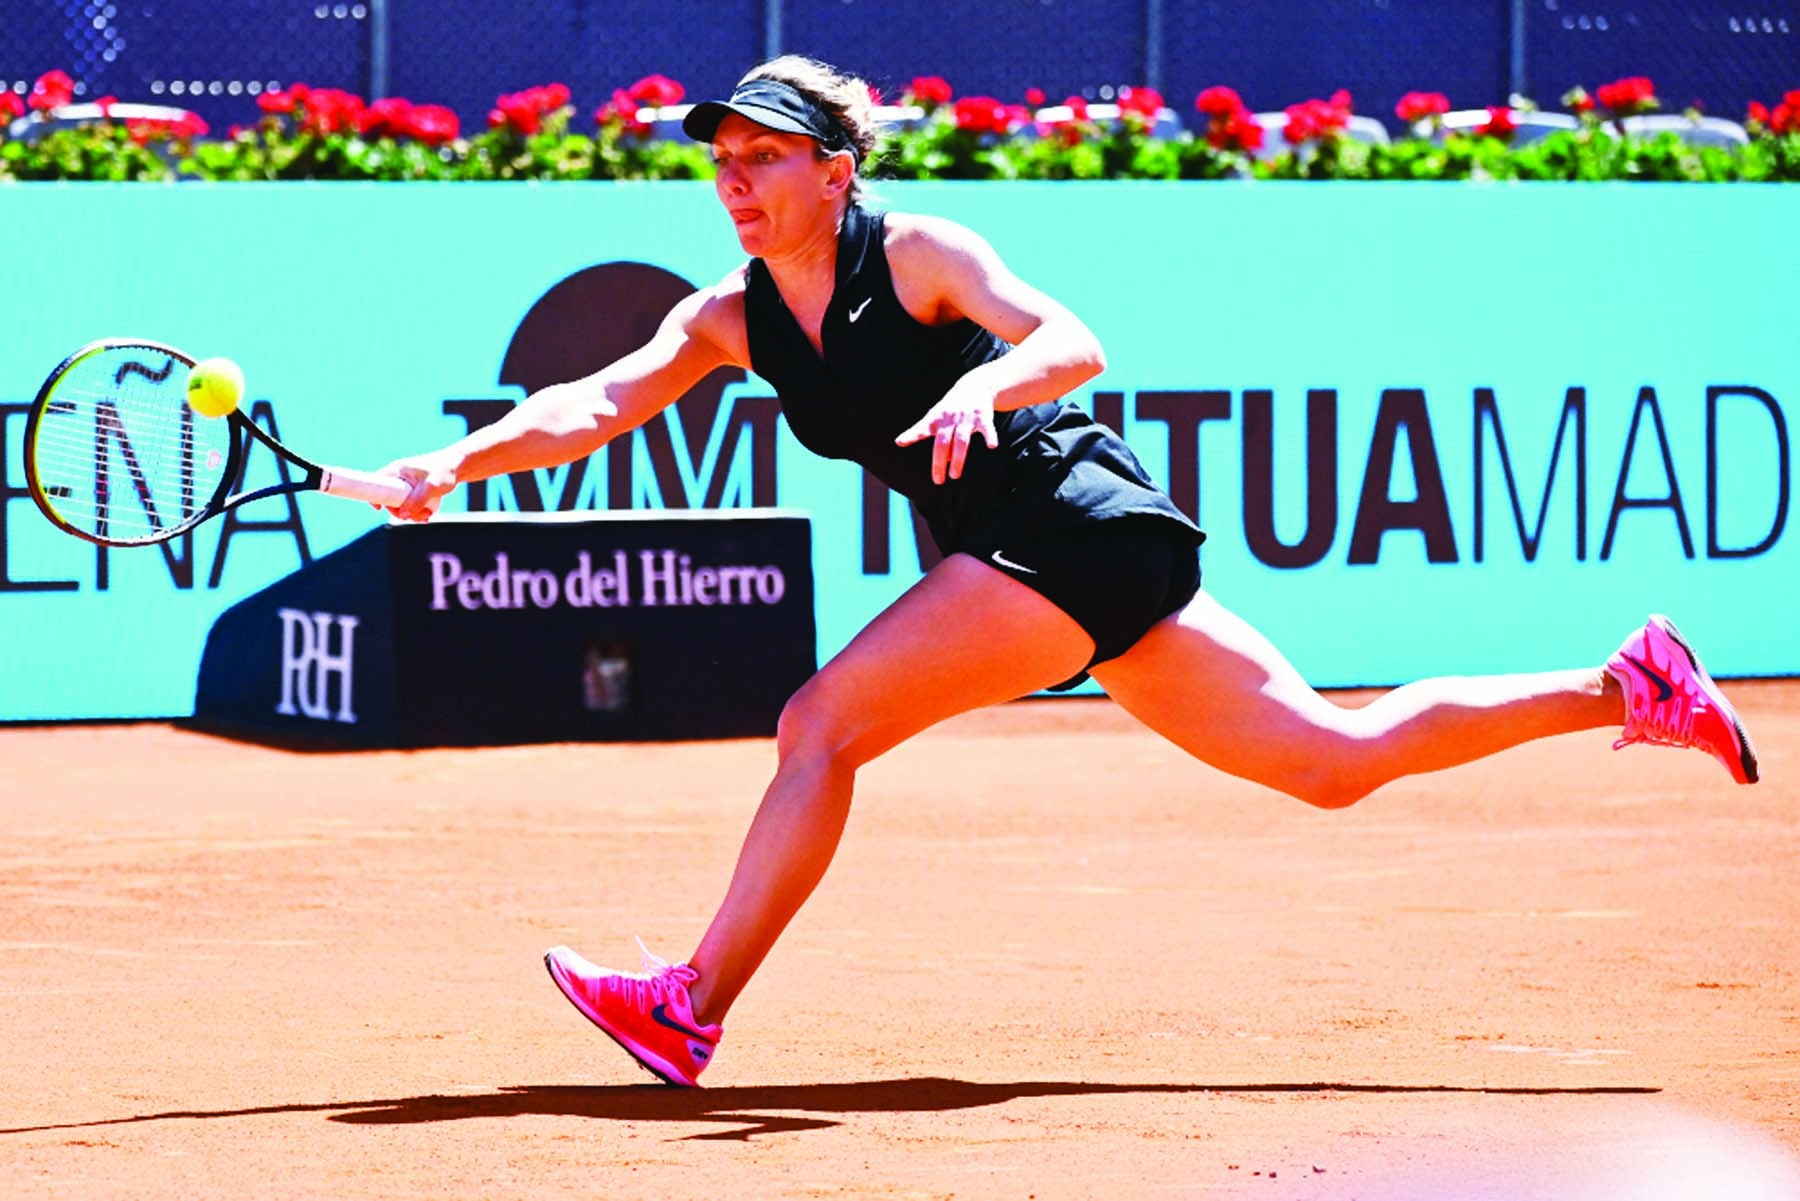 Halep knocked out of Madrid Open, Thiem cruises through